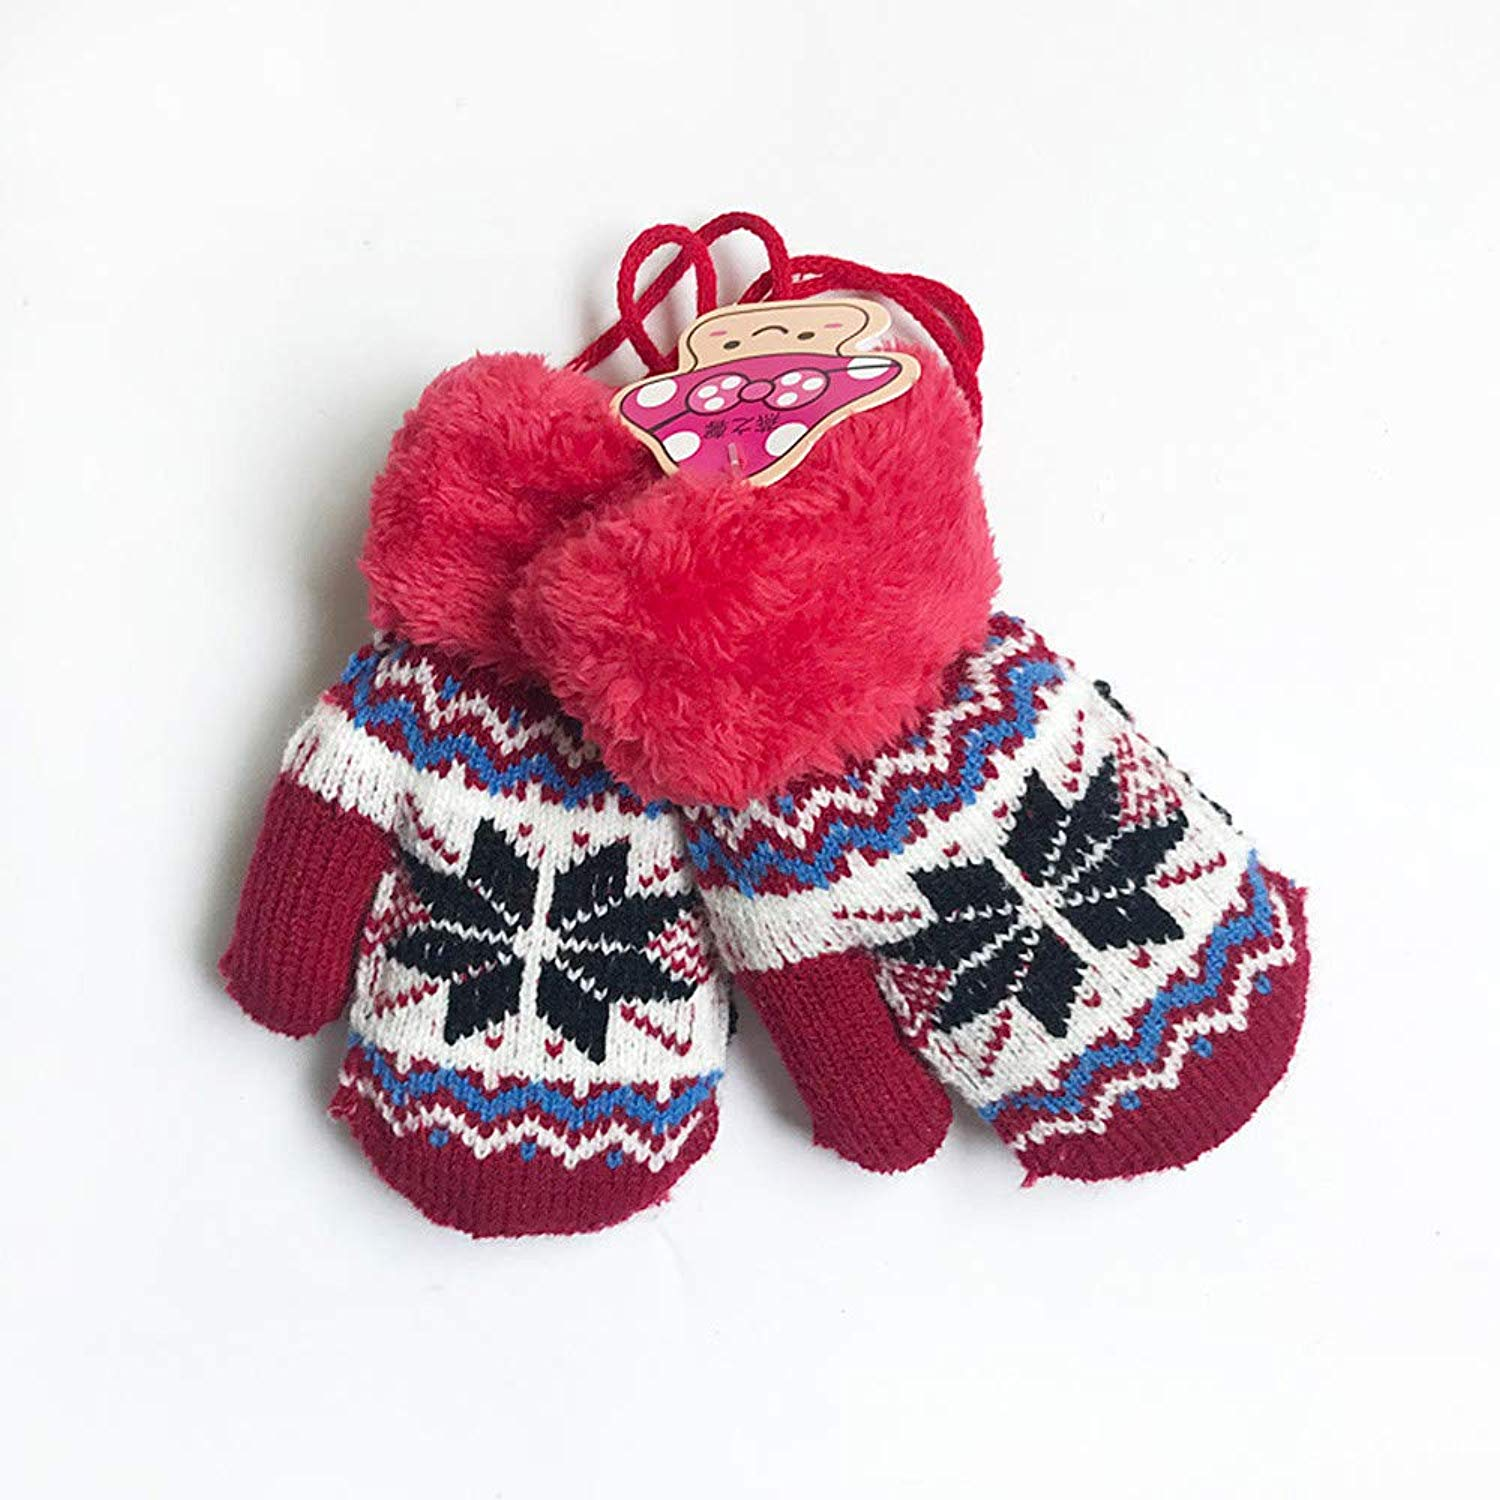 Toddler Baby Boy Girl Warm Winter Mittens Gloves with Fleece Lining Snowflake Design